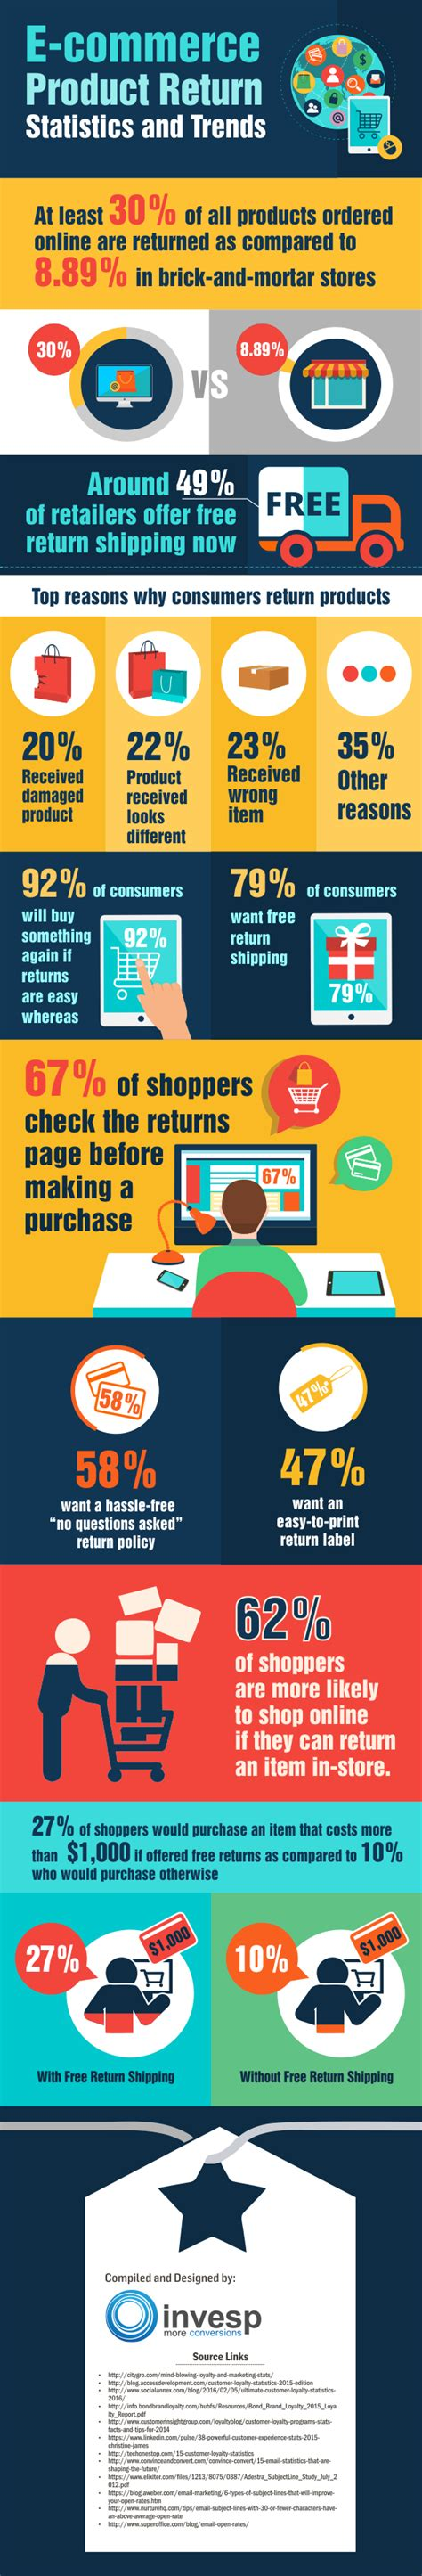 E-commerce Product Return Statistics and Trends [Infographic]